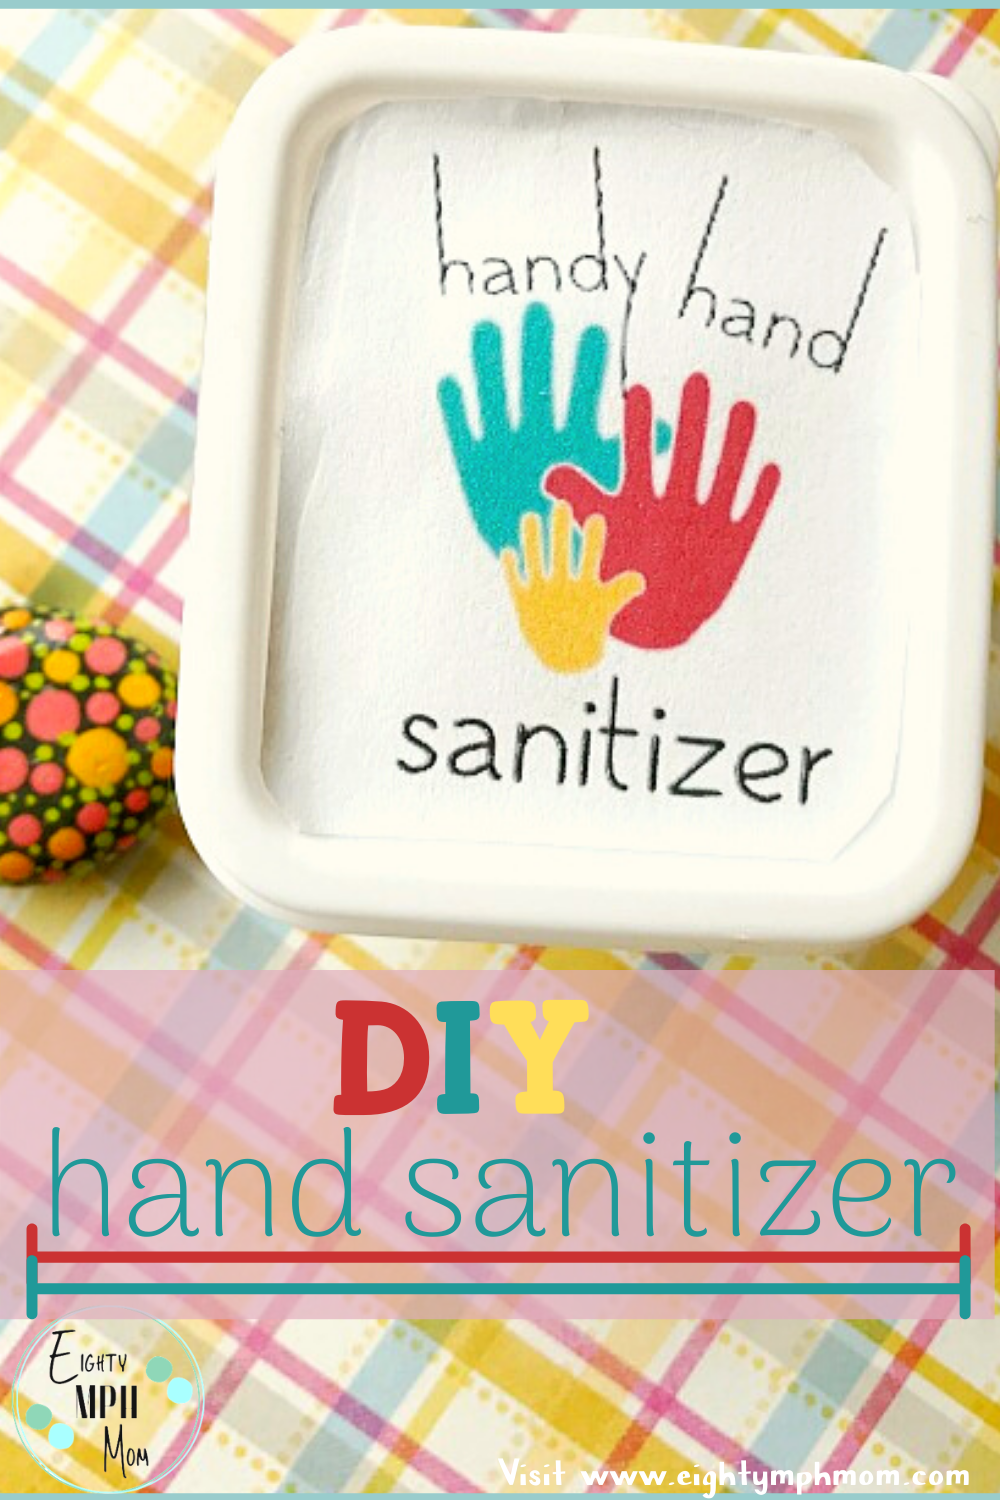 3 ingredient Hand Sanitizer - a quick and easy DIY hand sanitizer recipe that you can make in bulk to make sure that all of your family members have a supply of hand sanitizer on them at all times! Store your homemade hand sanitizer in small squirt bottles or pump bottles, or small plastic containers with lids. #handsanitizer #homemadesanitizer #cleanhands #DIYcleanser #sanitizer #keepitclean #